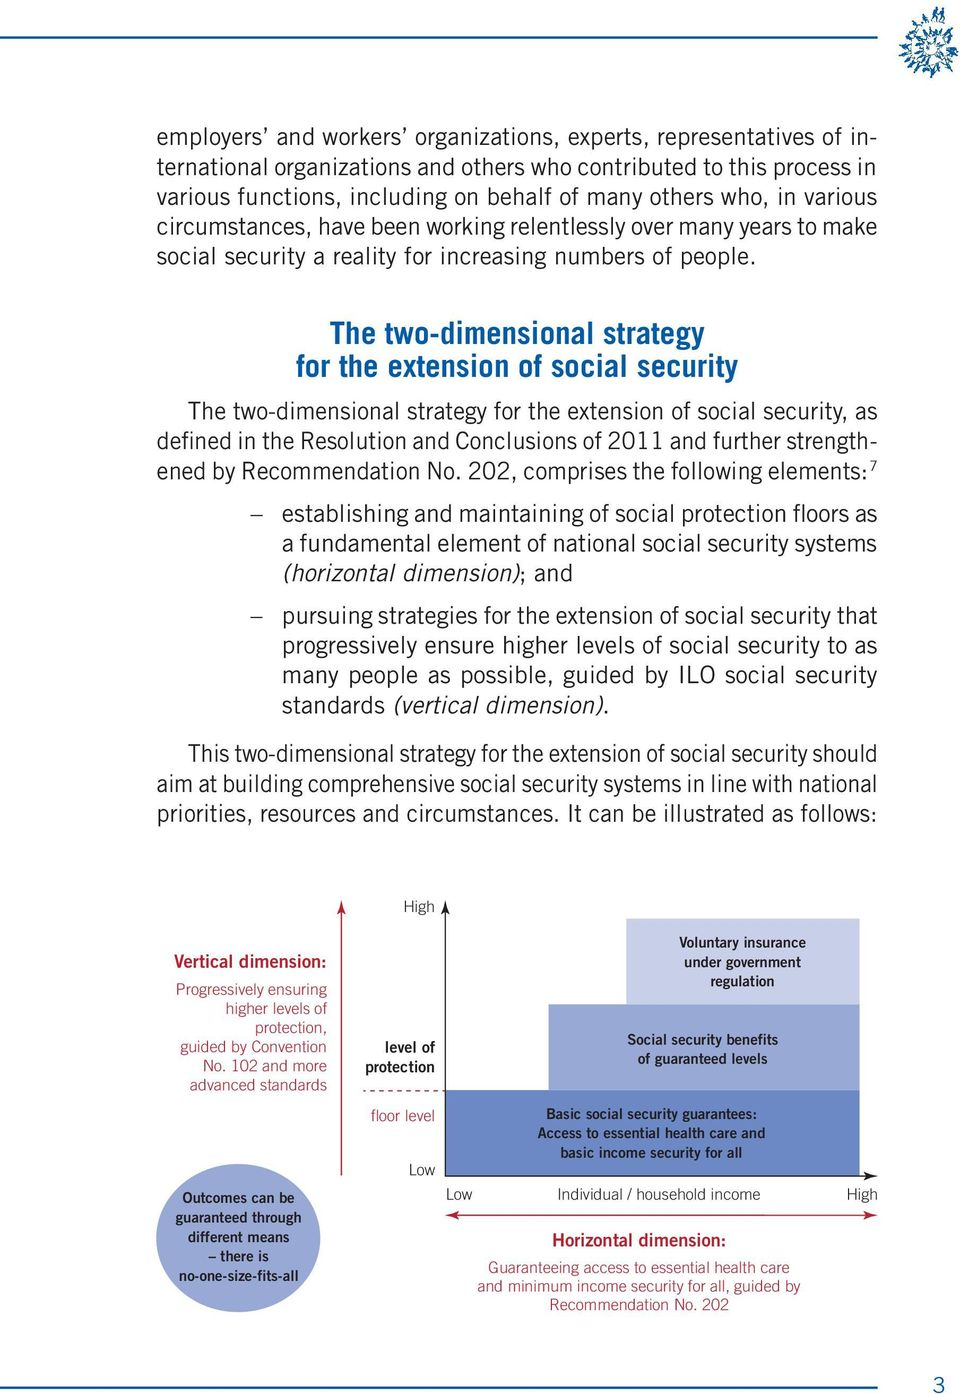 The two-dimensional strategy for the extension of social security The two-dimensional strategy for the extension of social security, as defined in the Resolution and Conclusions of 2011 and further